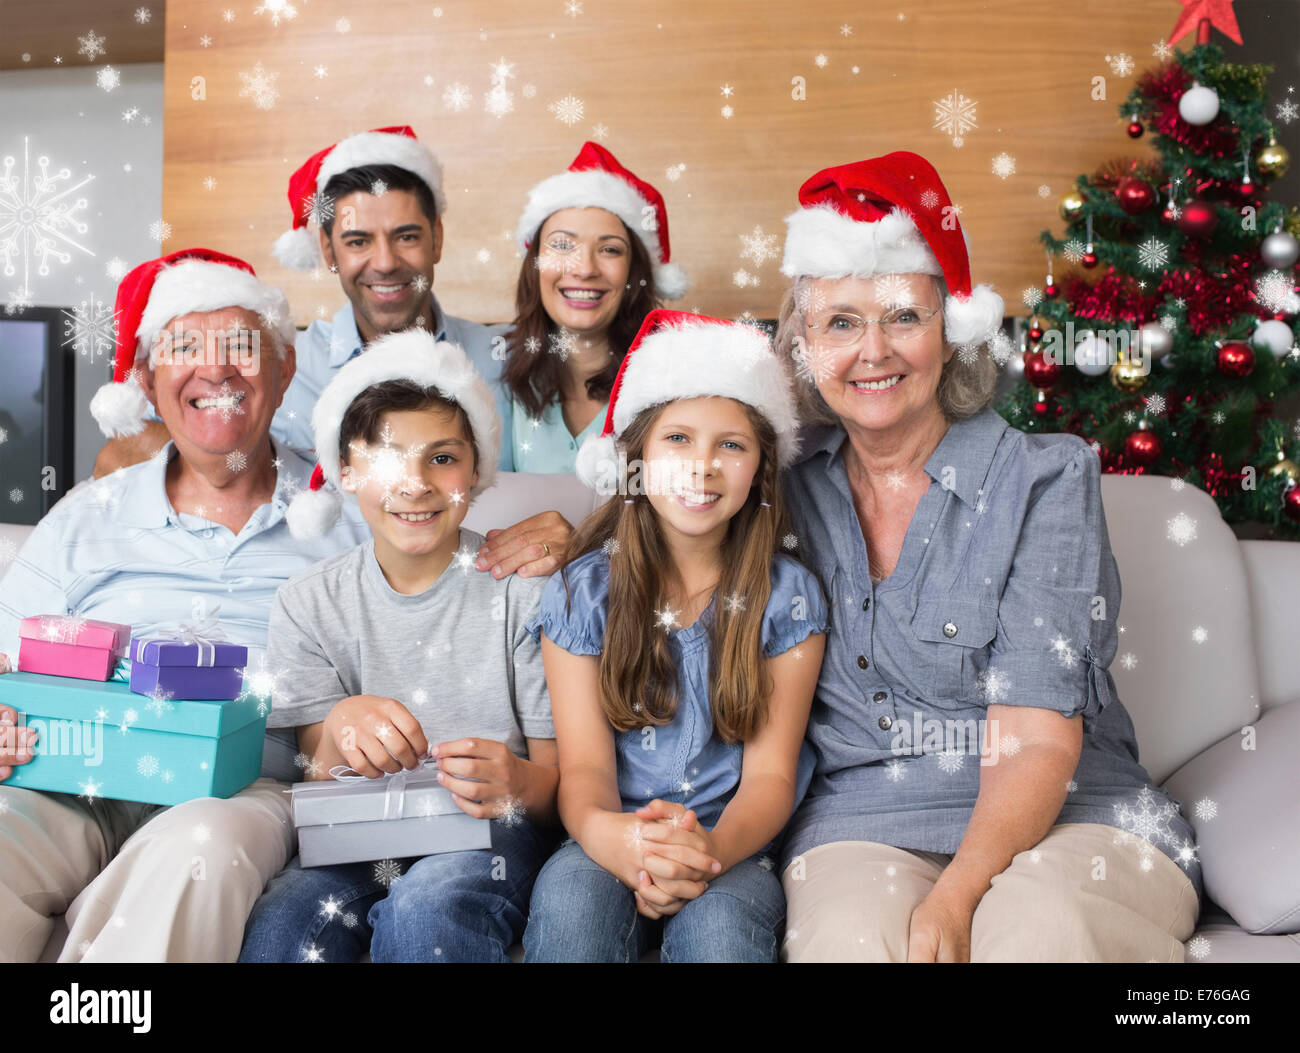 Composite image of extended family in christmas hats with gift boxes in living room - Stock Image